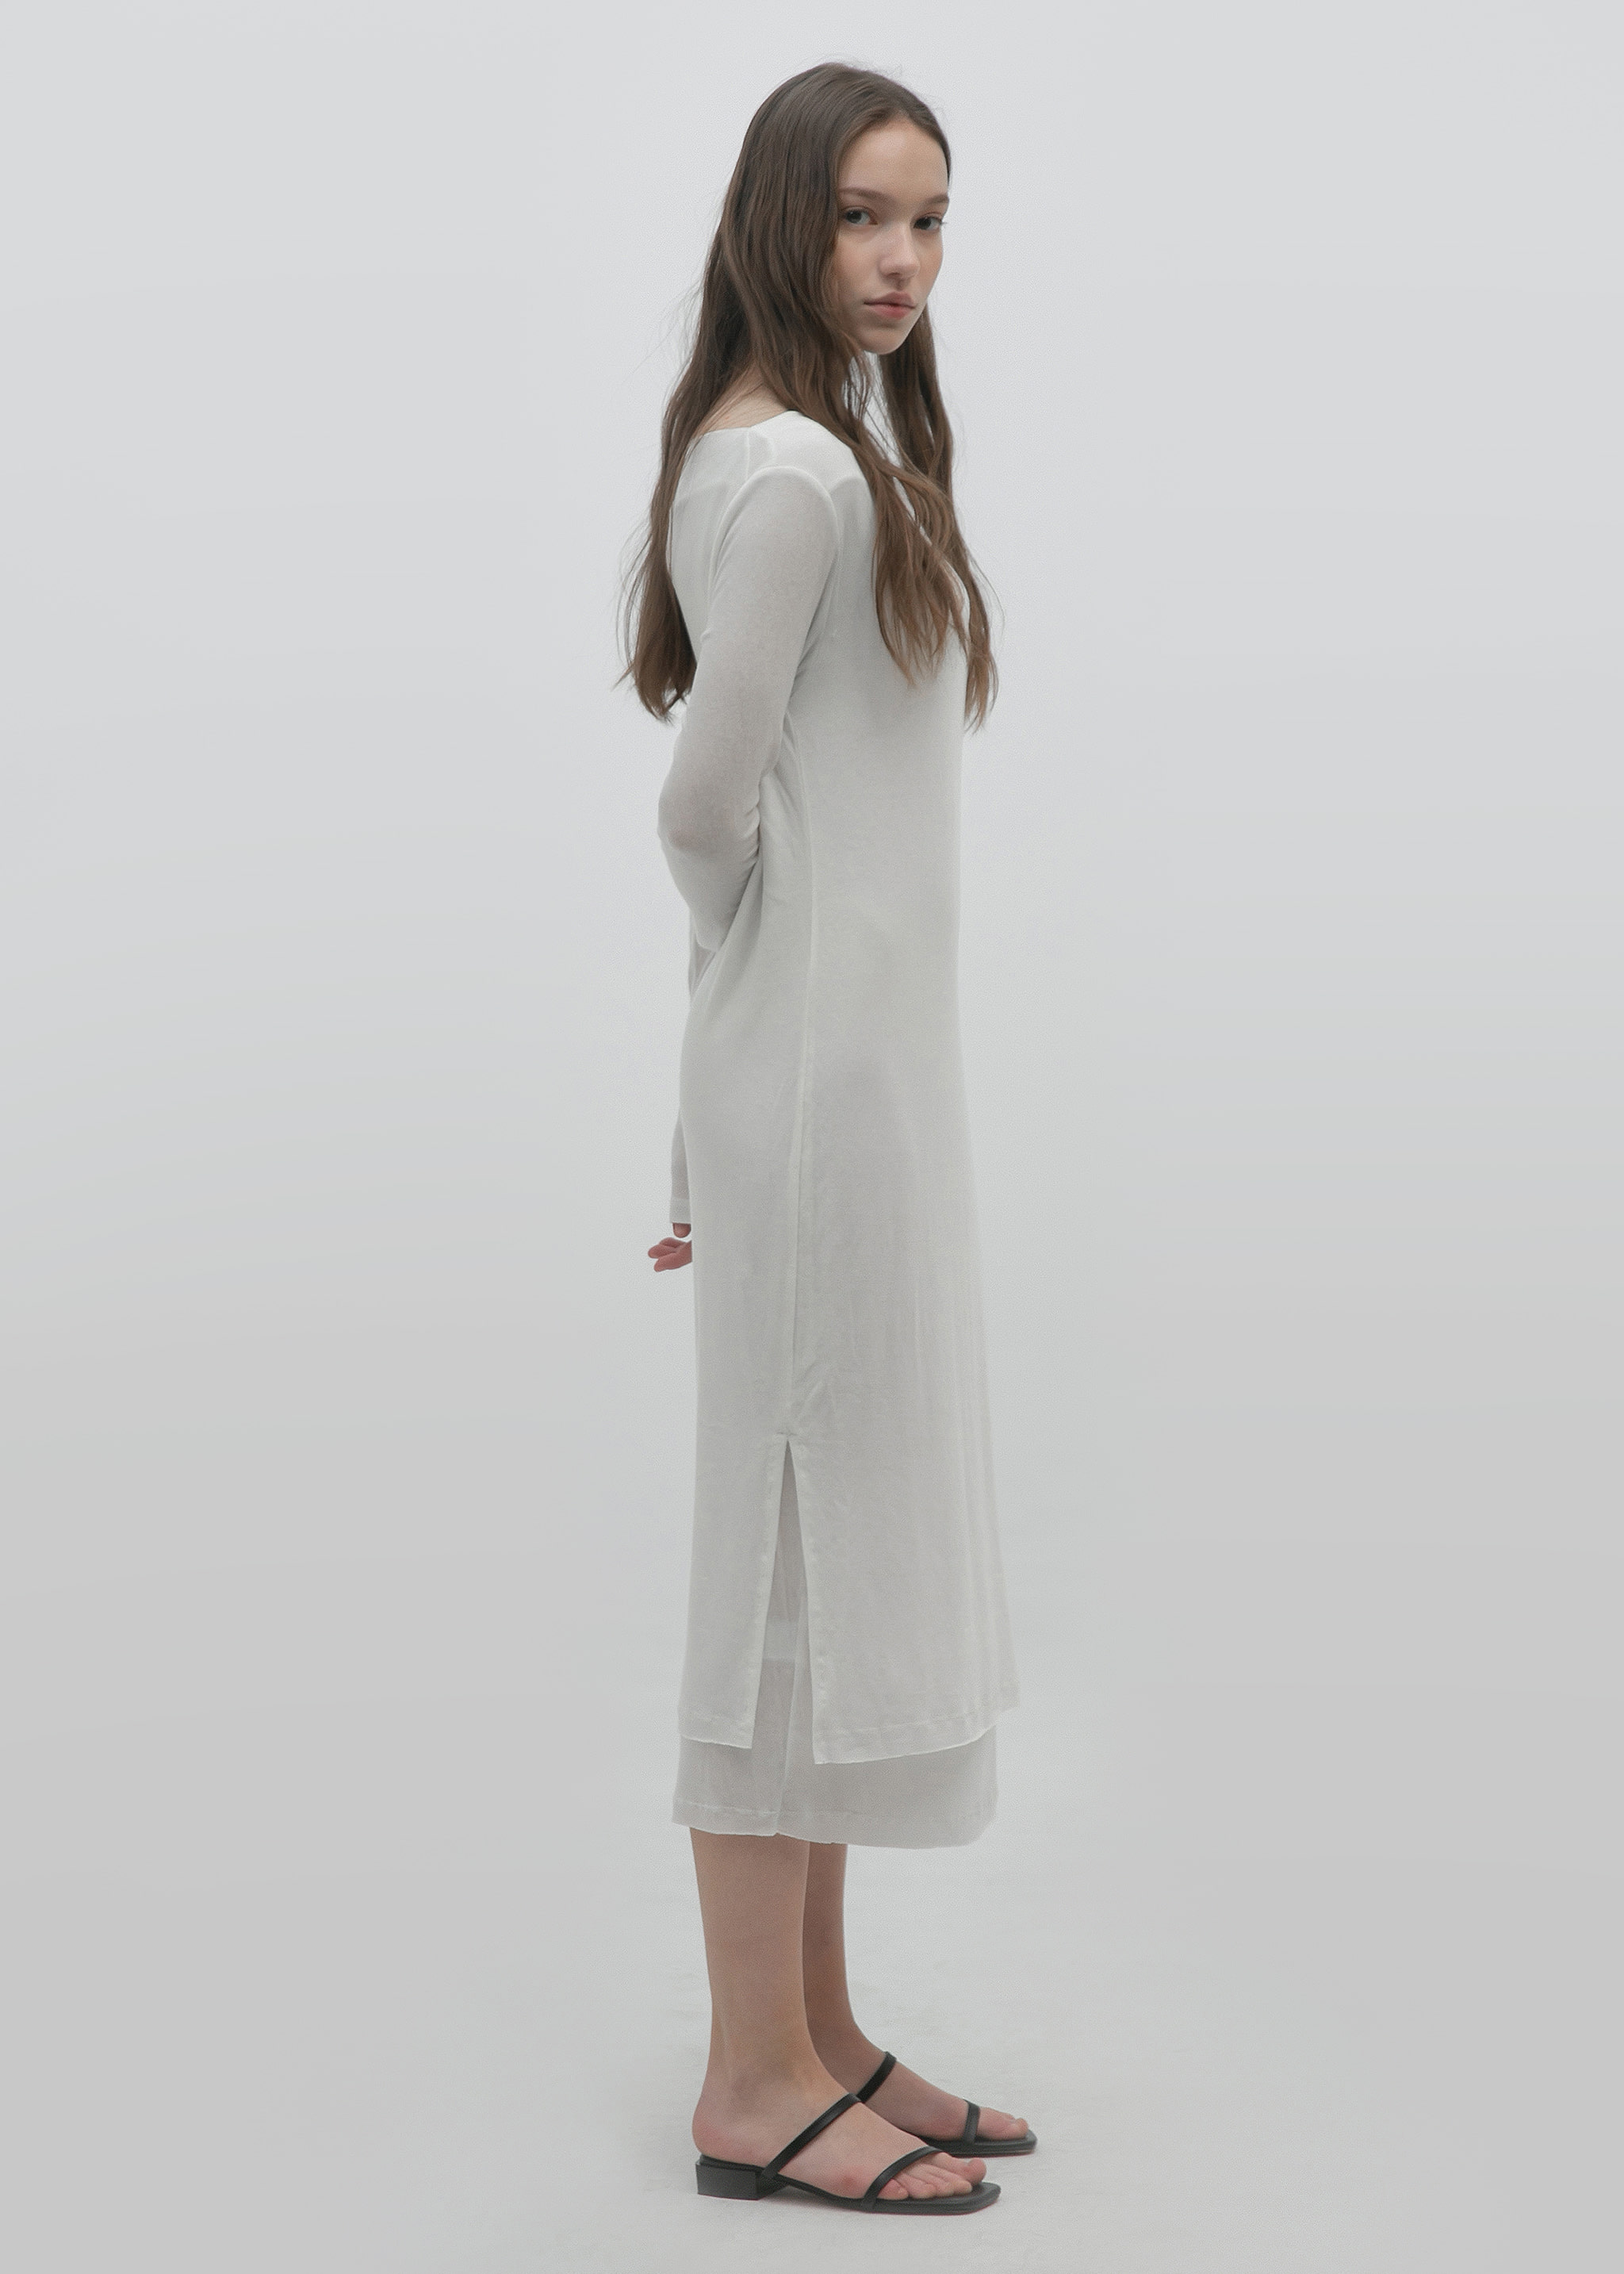 LAYERED JERSEY DRESS (CREAM)